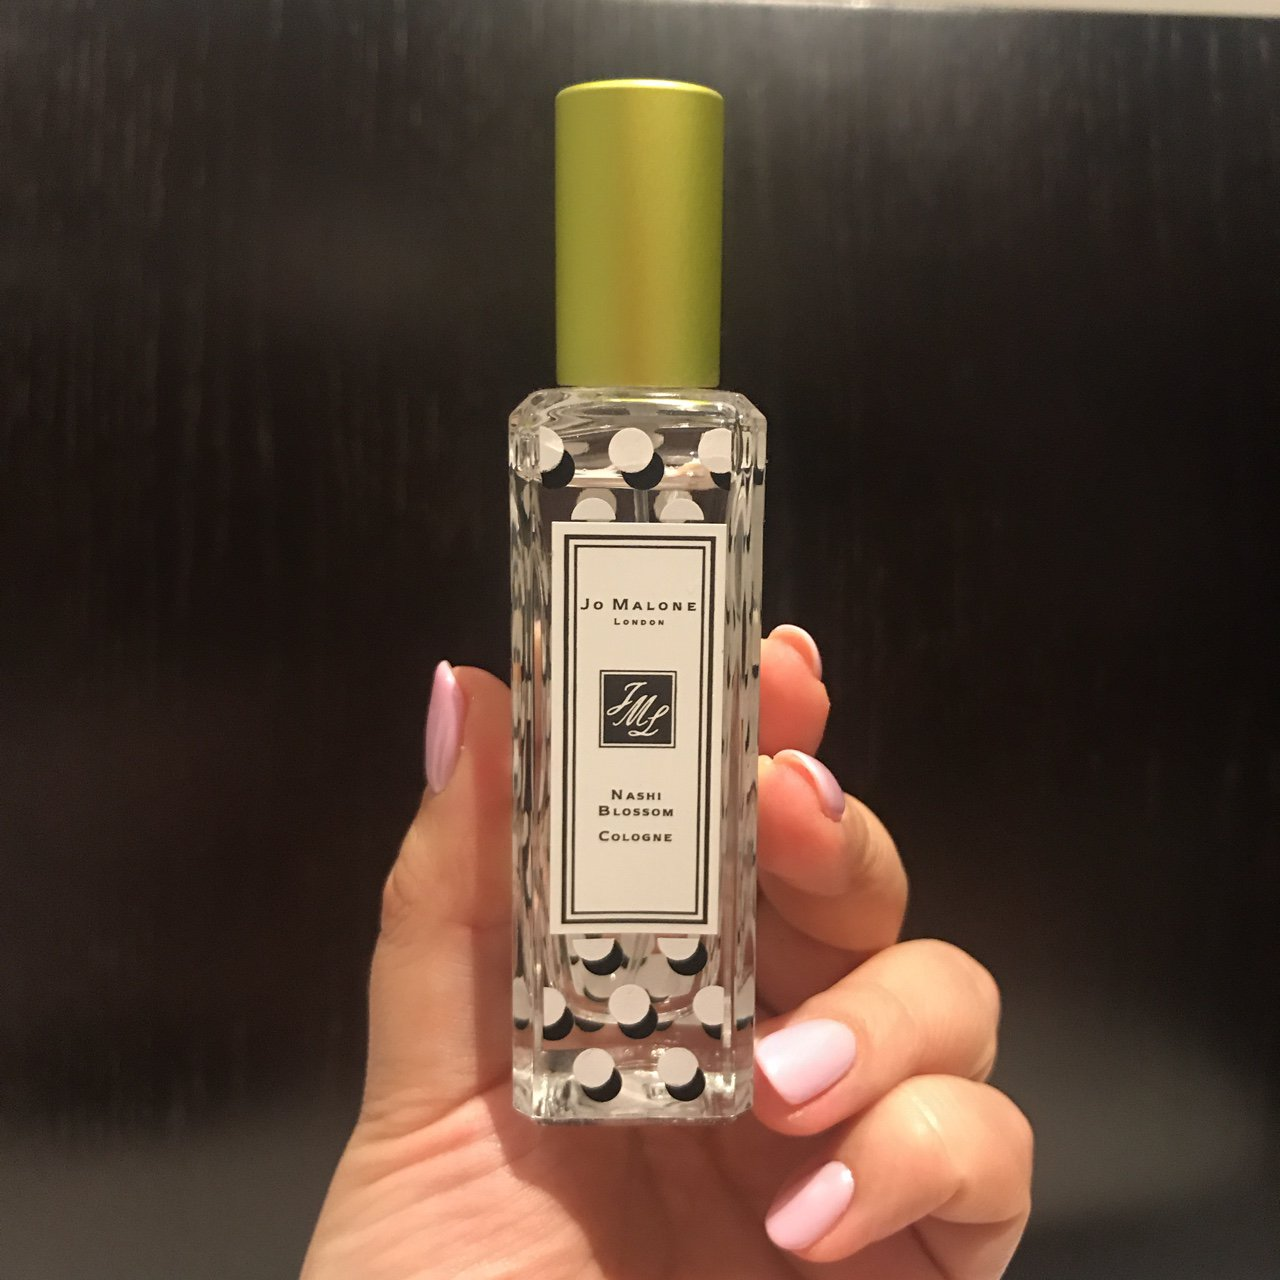 Almost Full Bottle Of Jo Malone Limited Edition Nashi Depop